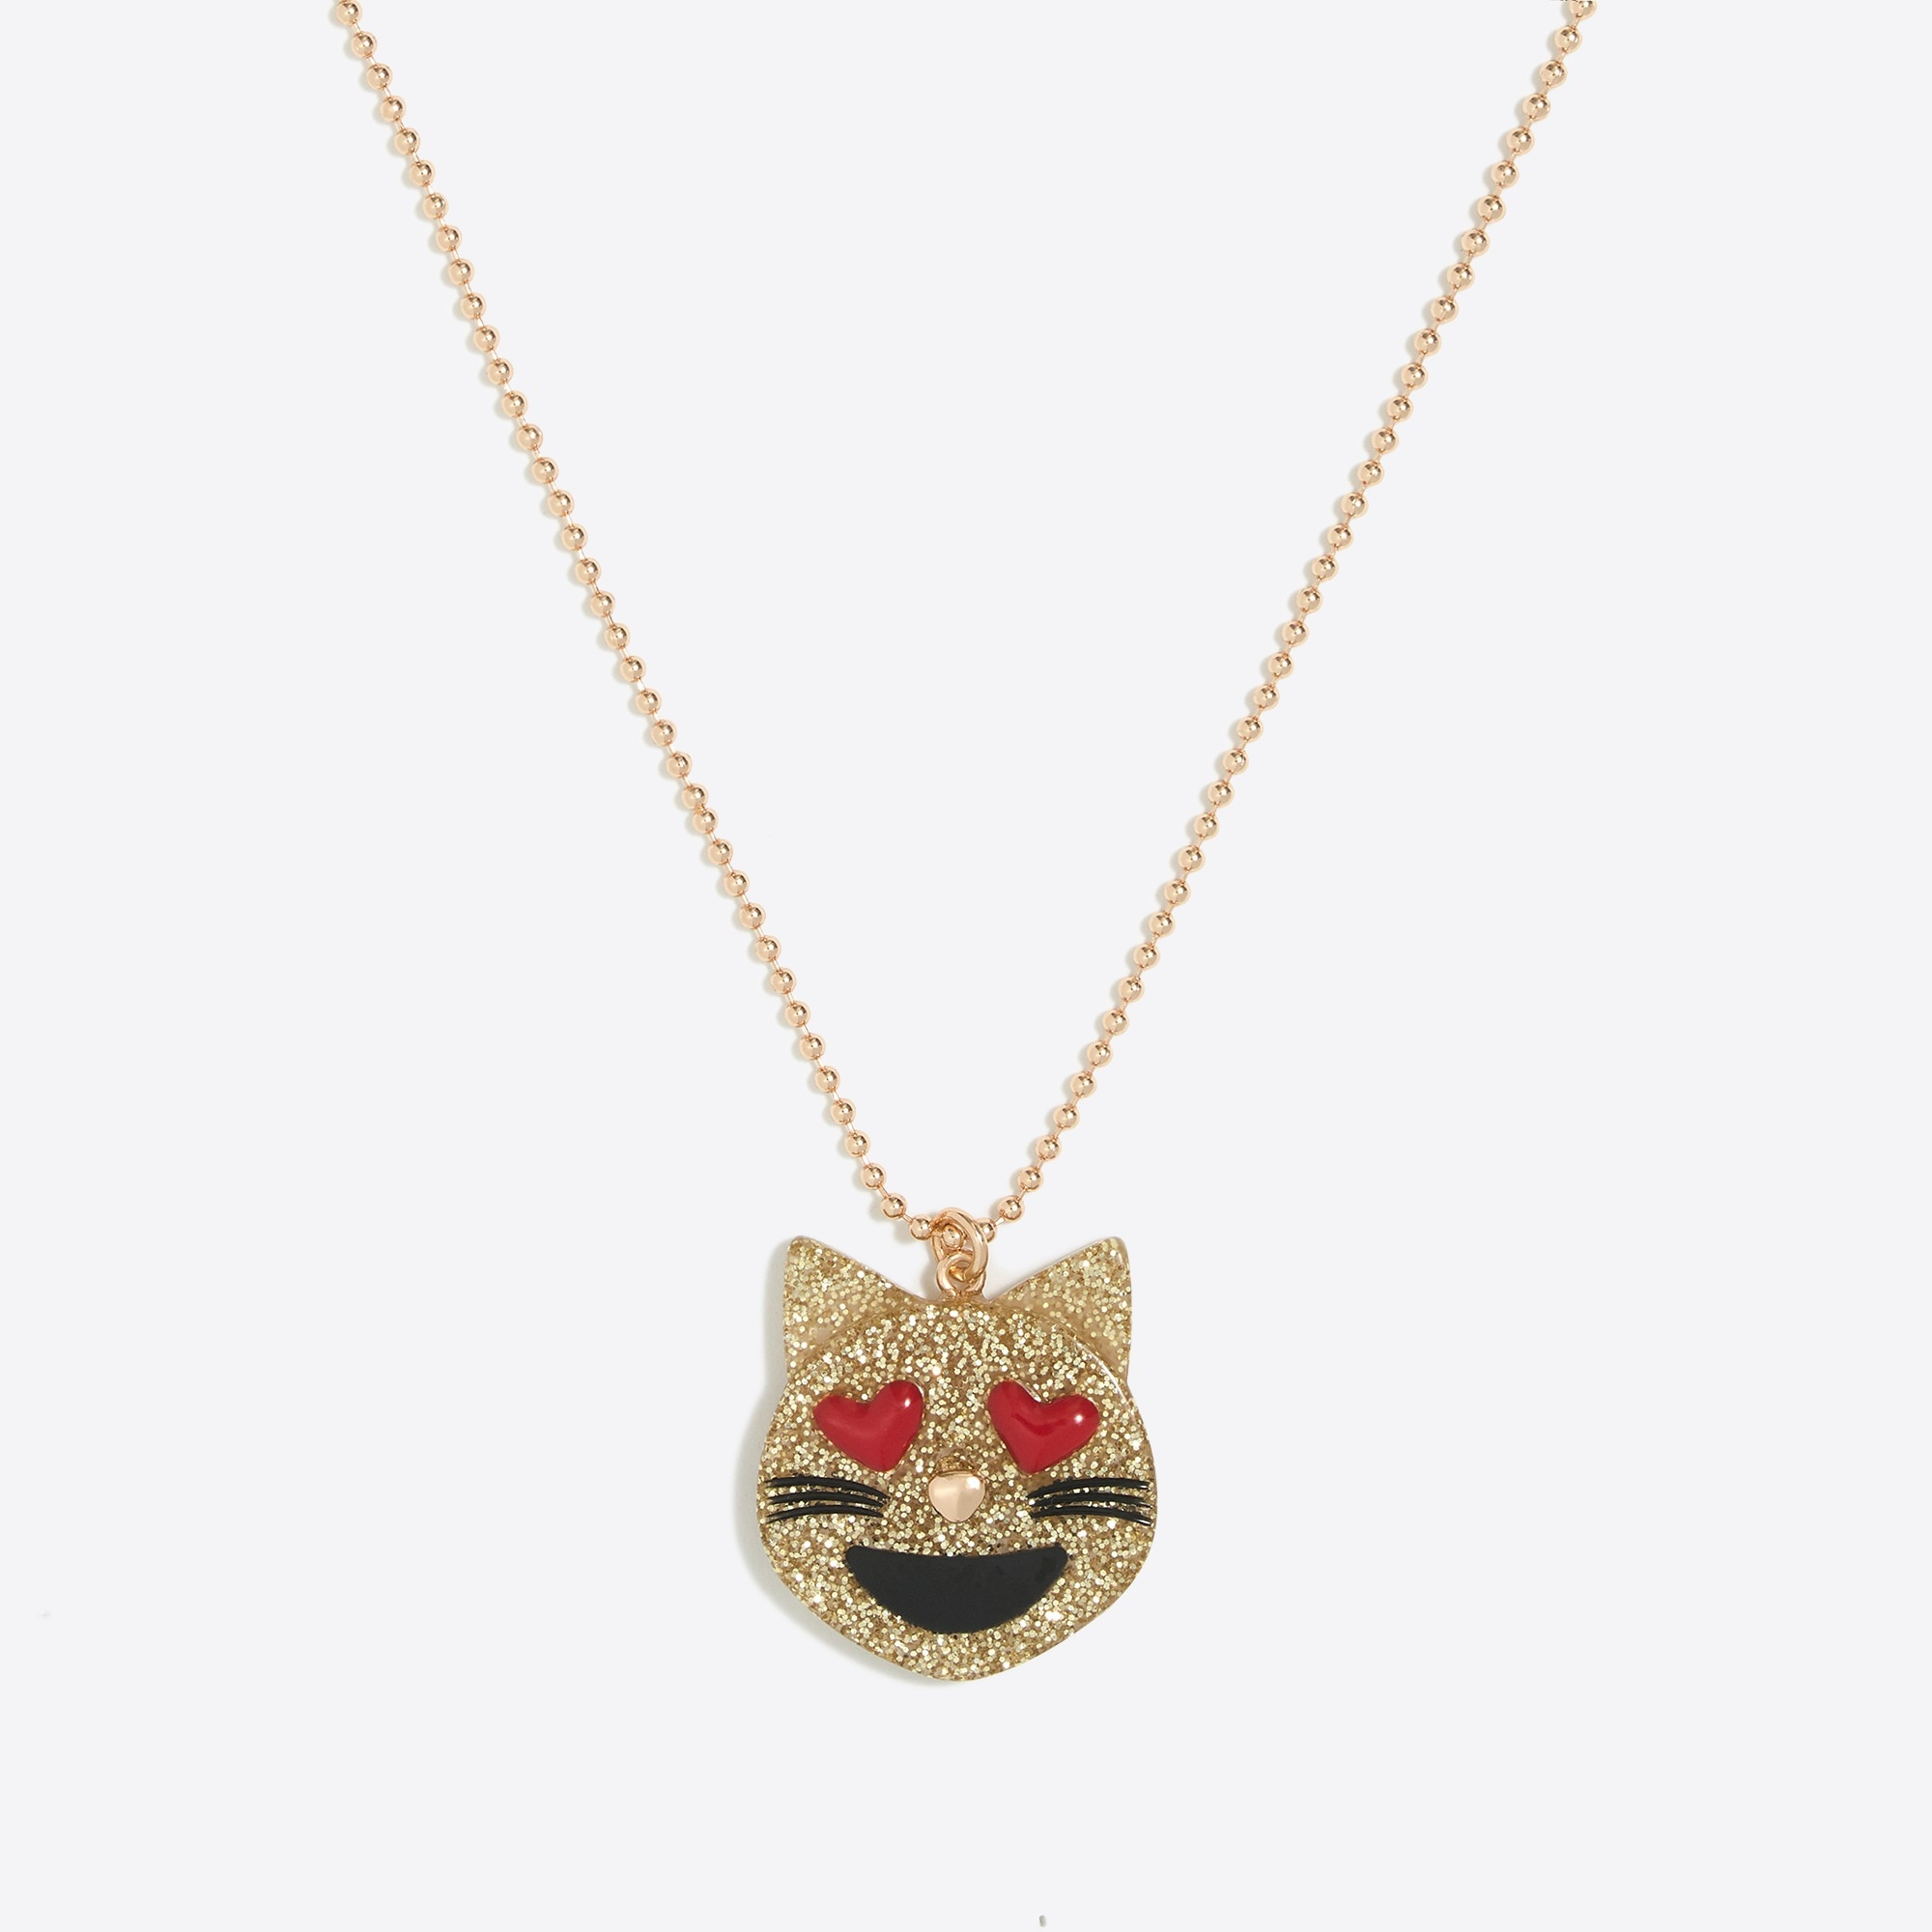 Image 1 for Girls' emoji pendant necklace